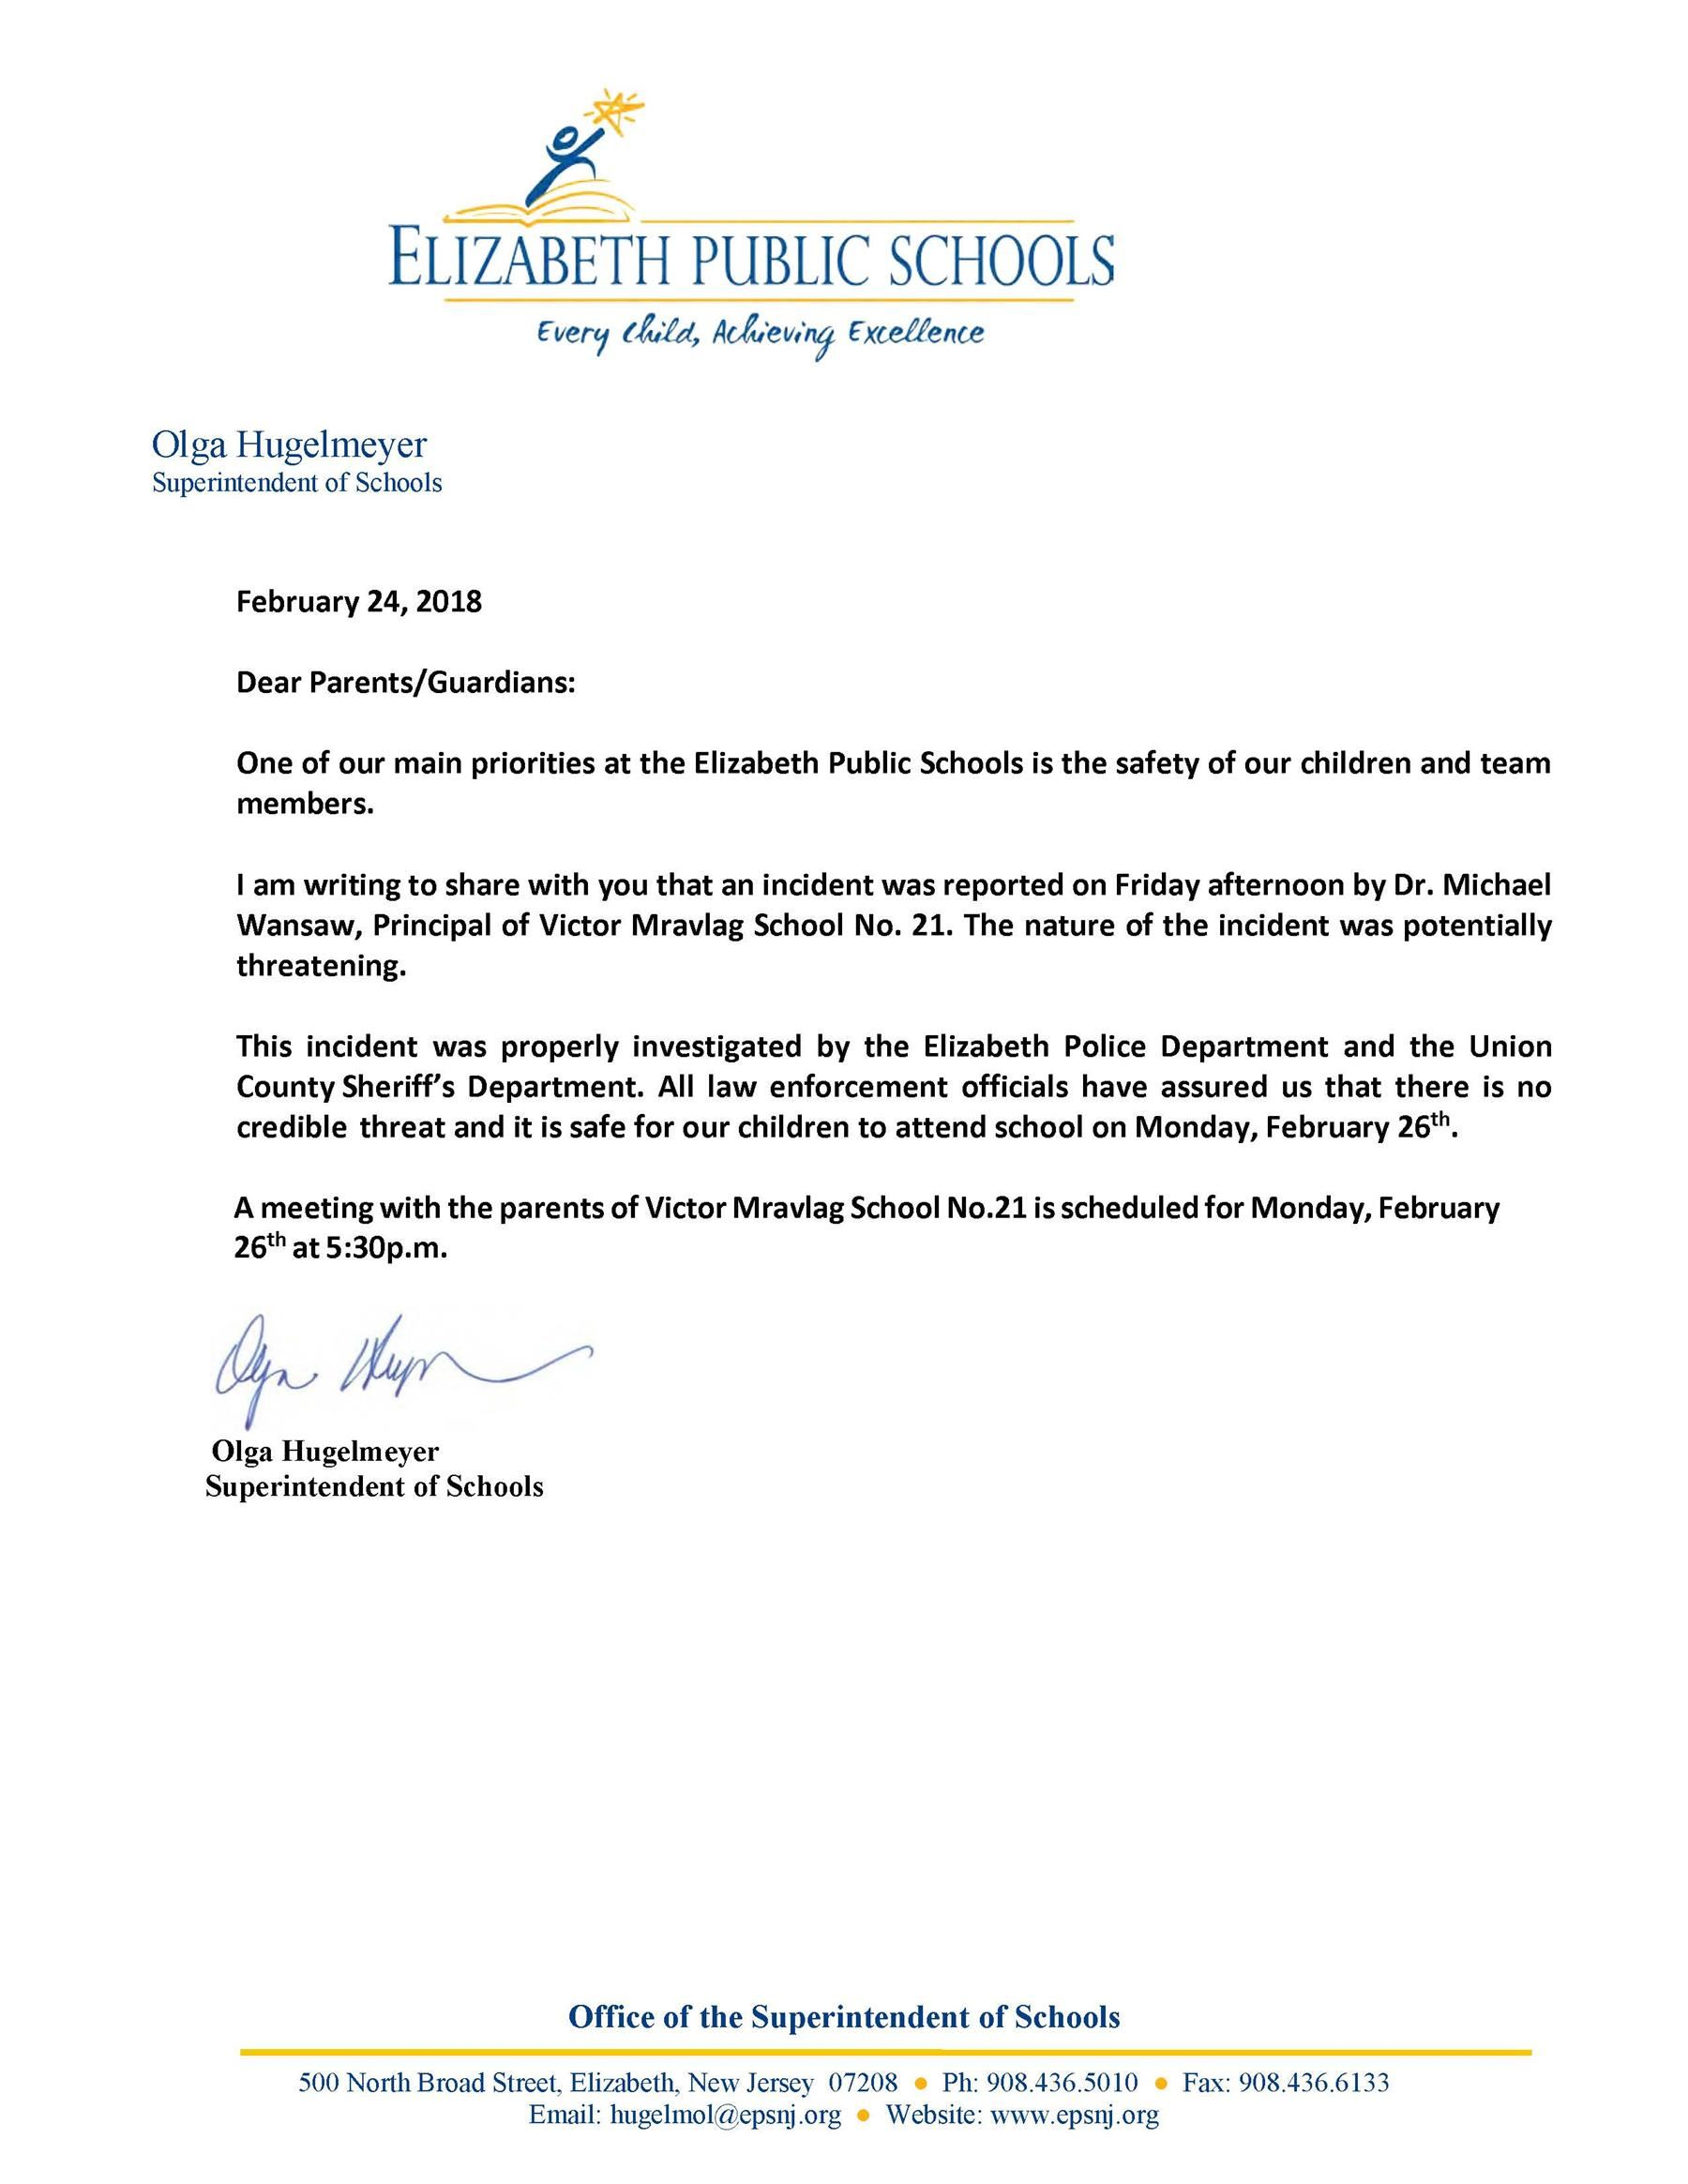 Letter to Parents Regarding Incident at School 21